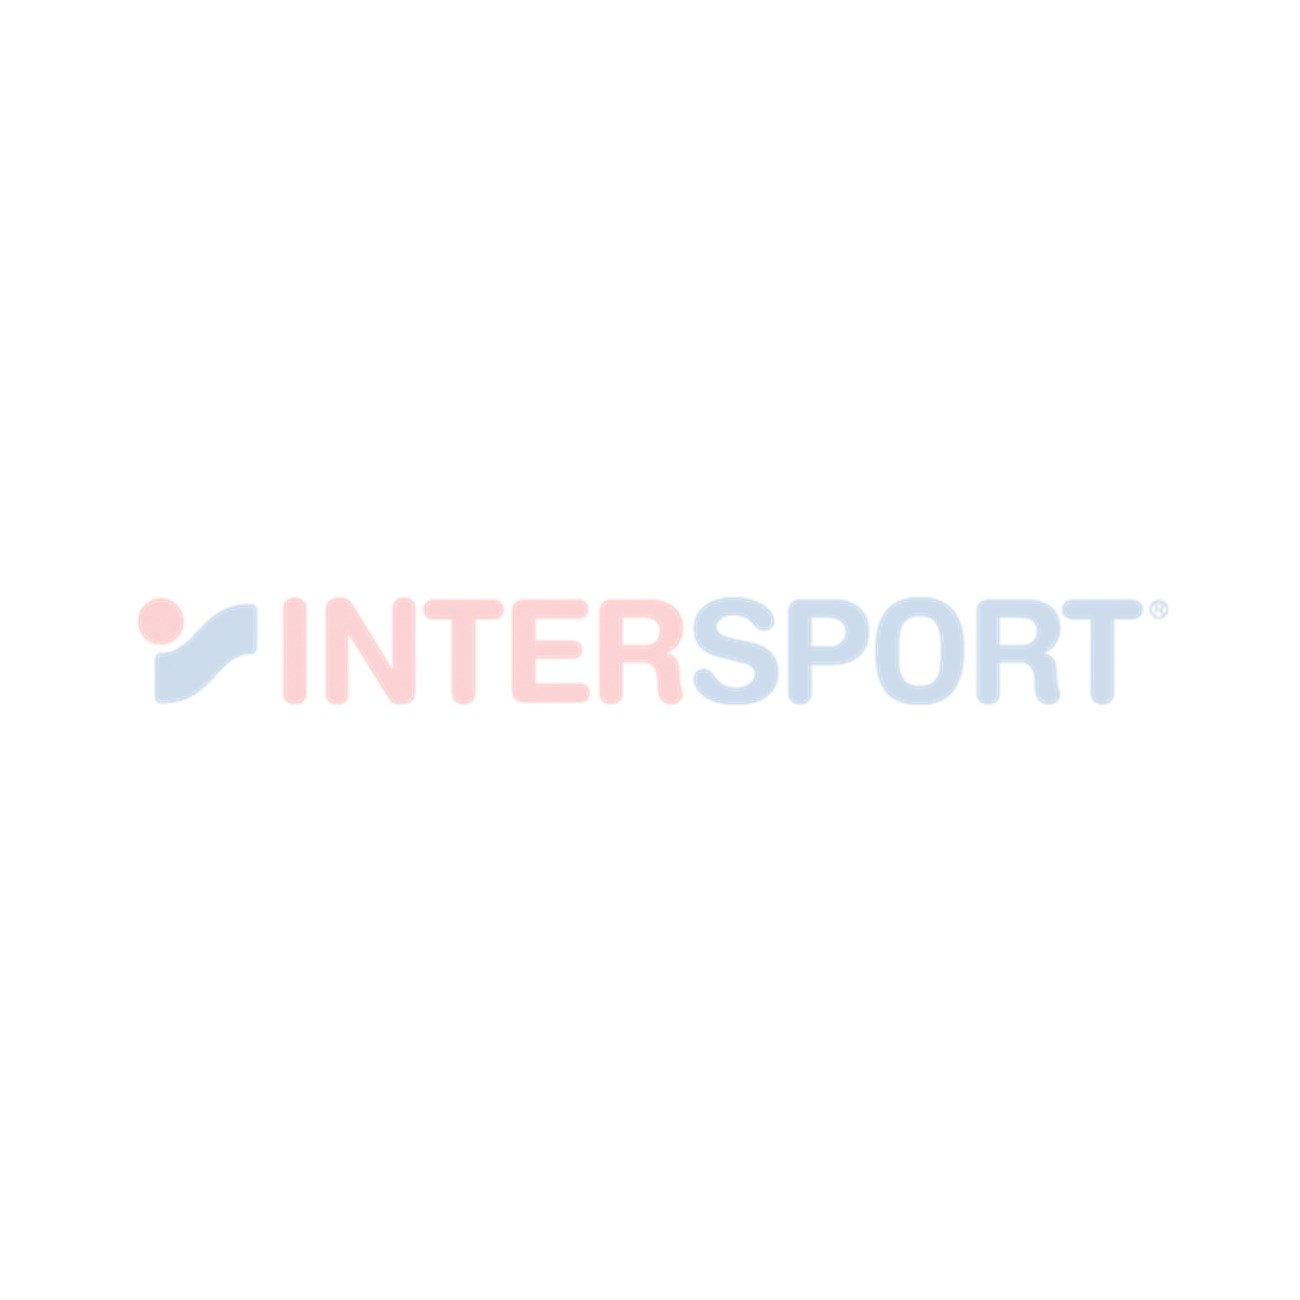 BODY TALK Κολάν Sports Wise 1201-906706-00824 - INTERSPORT Cyprus